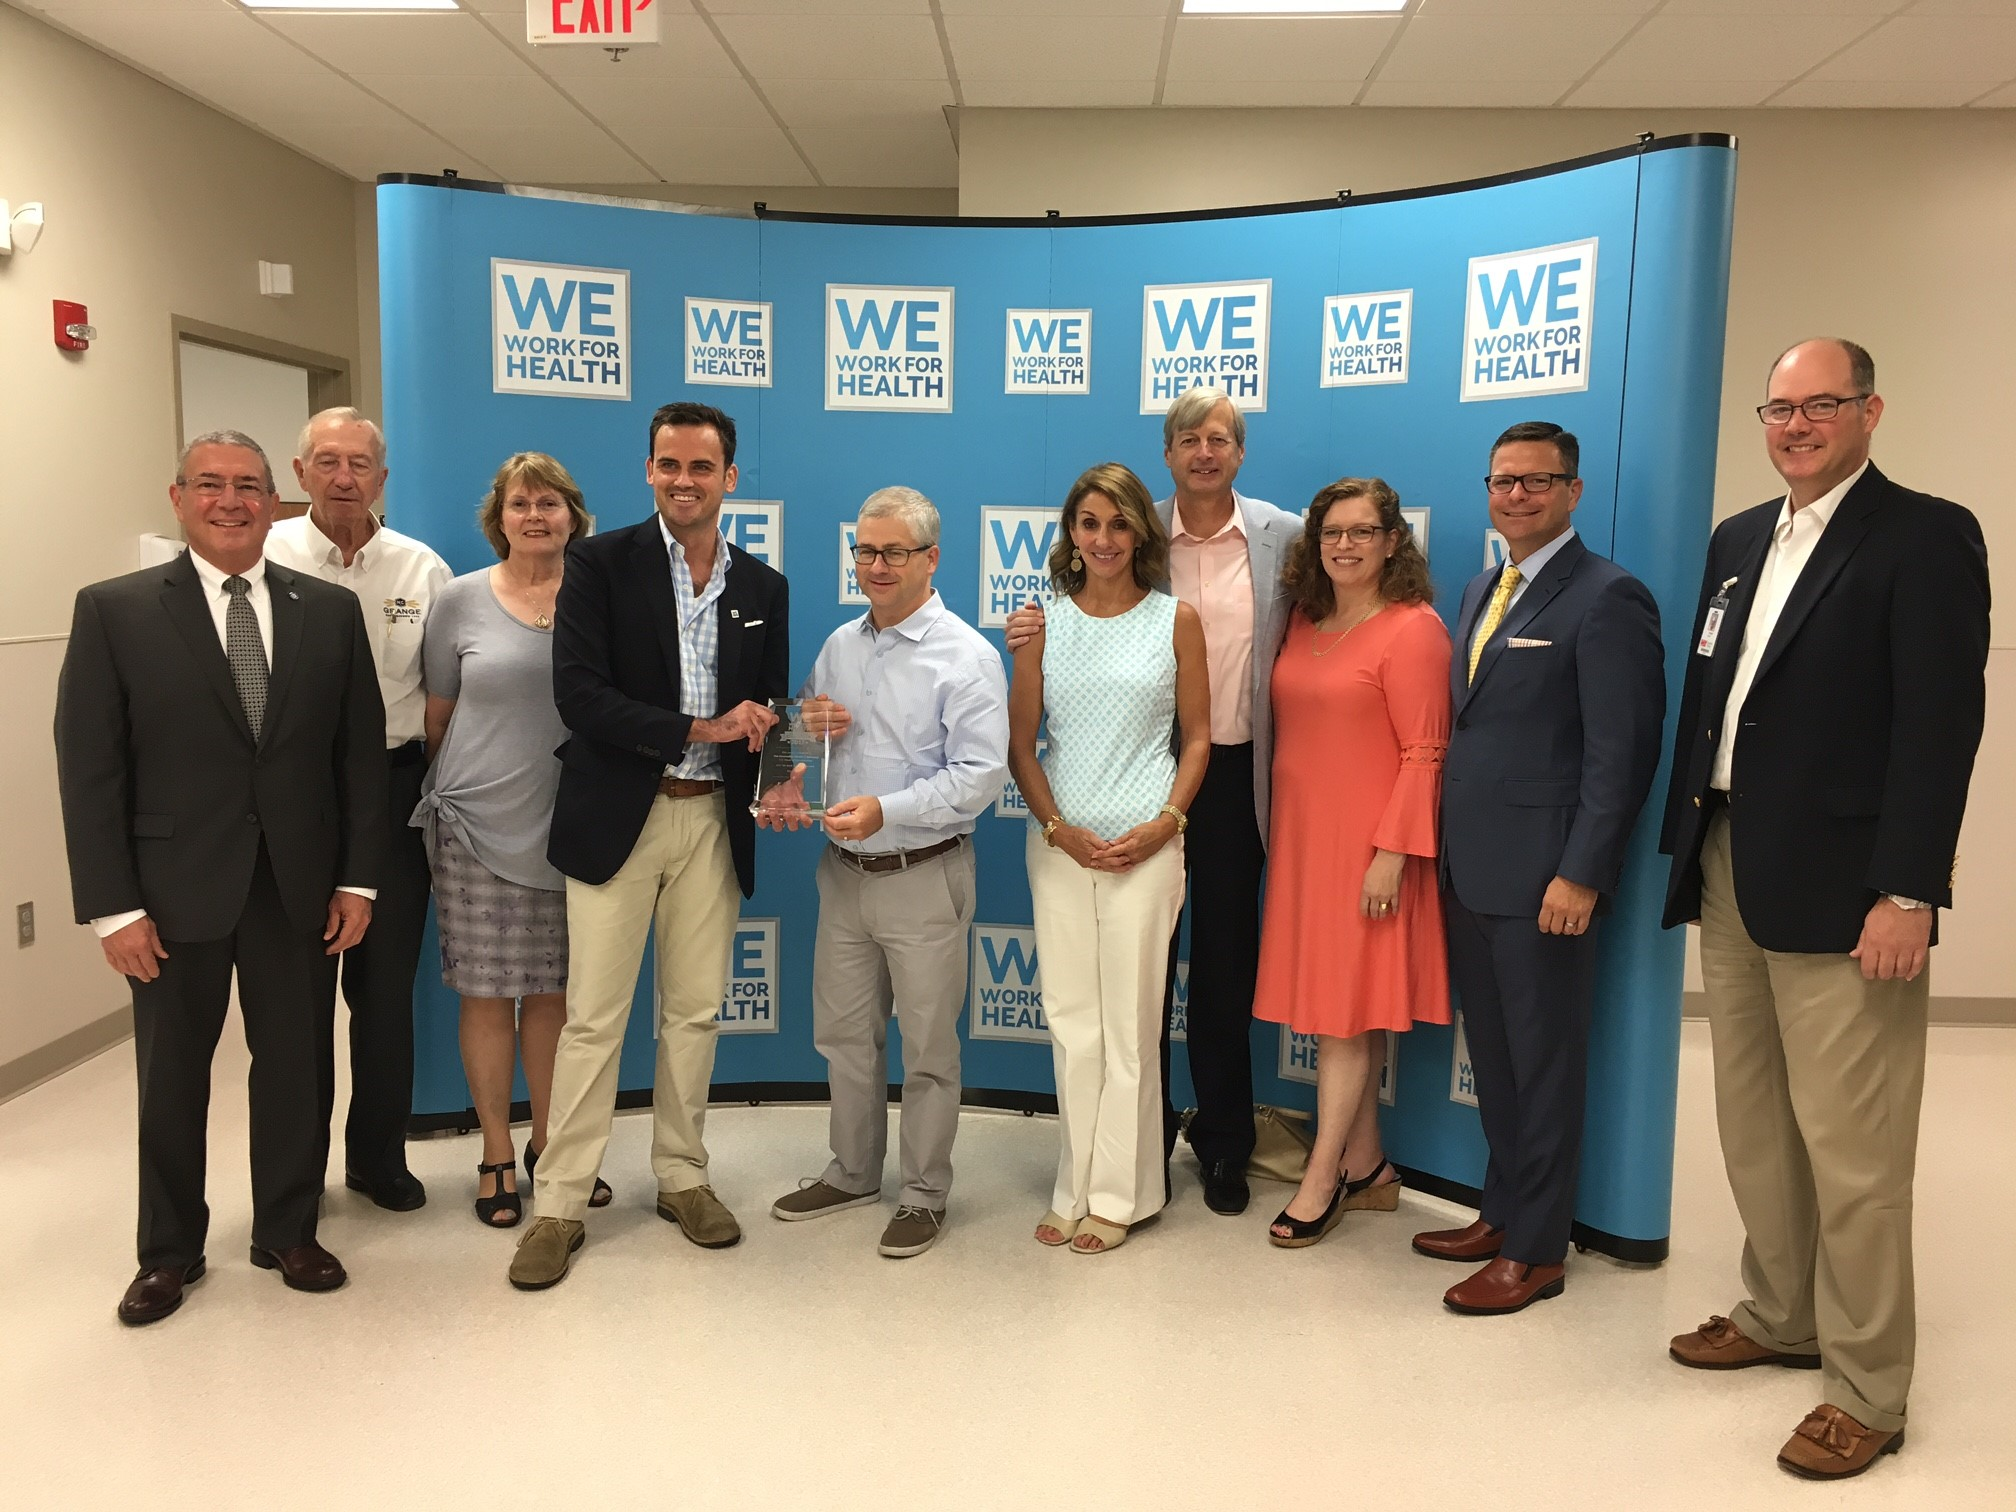 The WWFH campaign recognizes members of Congress who have championed medical innovation and access to new treatments and therapies. In 2017, Congressman Patrick McHenry (R), was recognized for his leadership with the WWFH Legislative Champion Award.